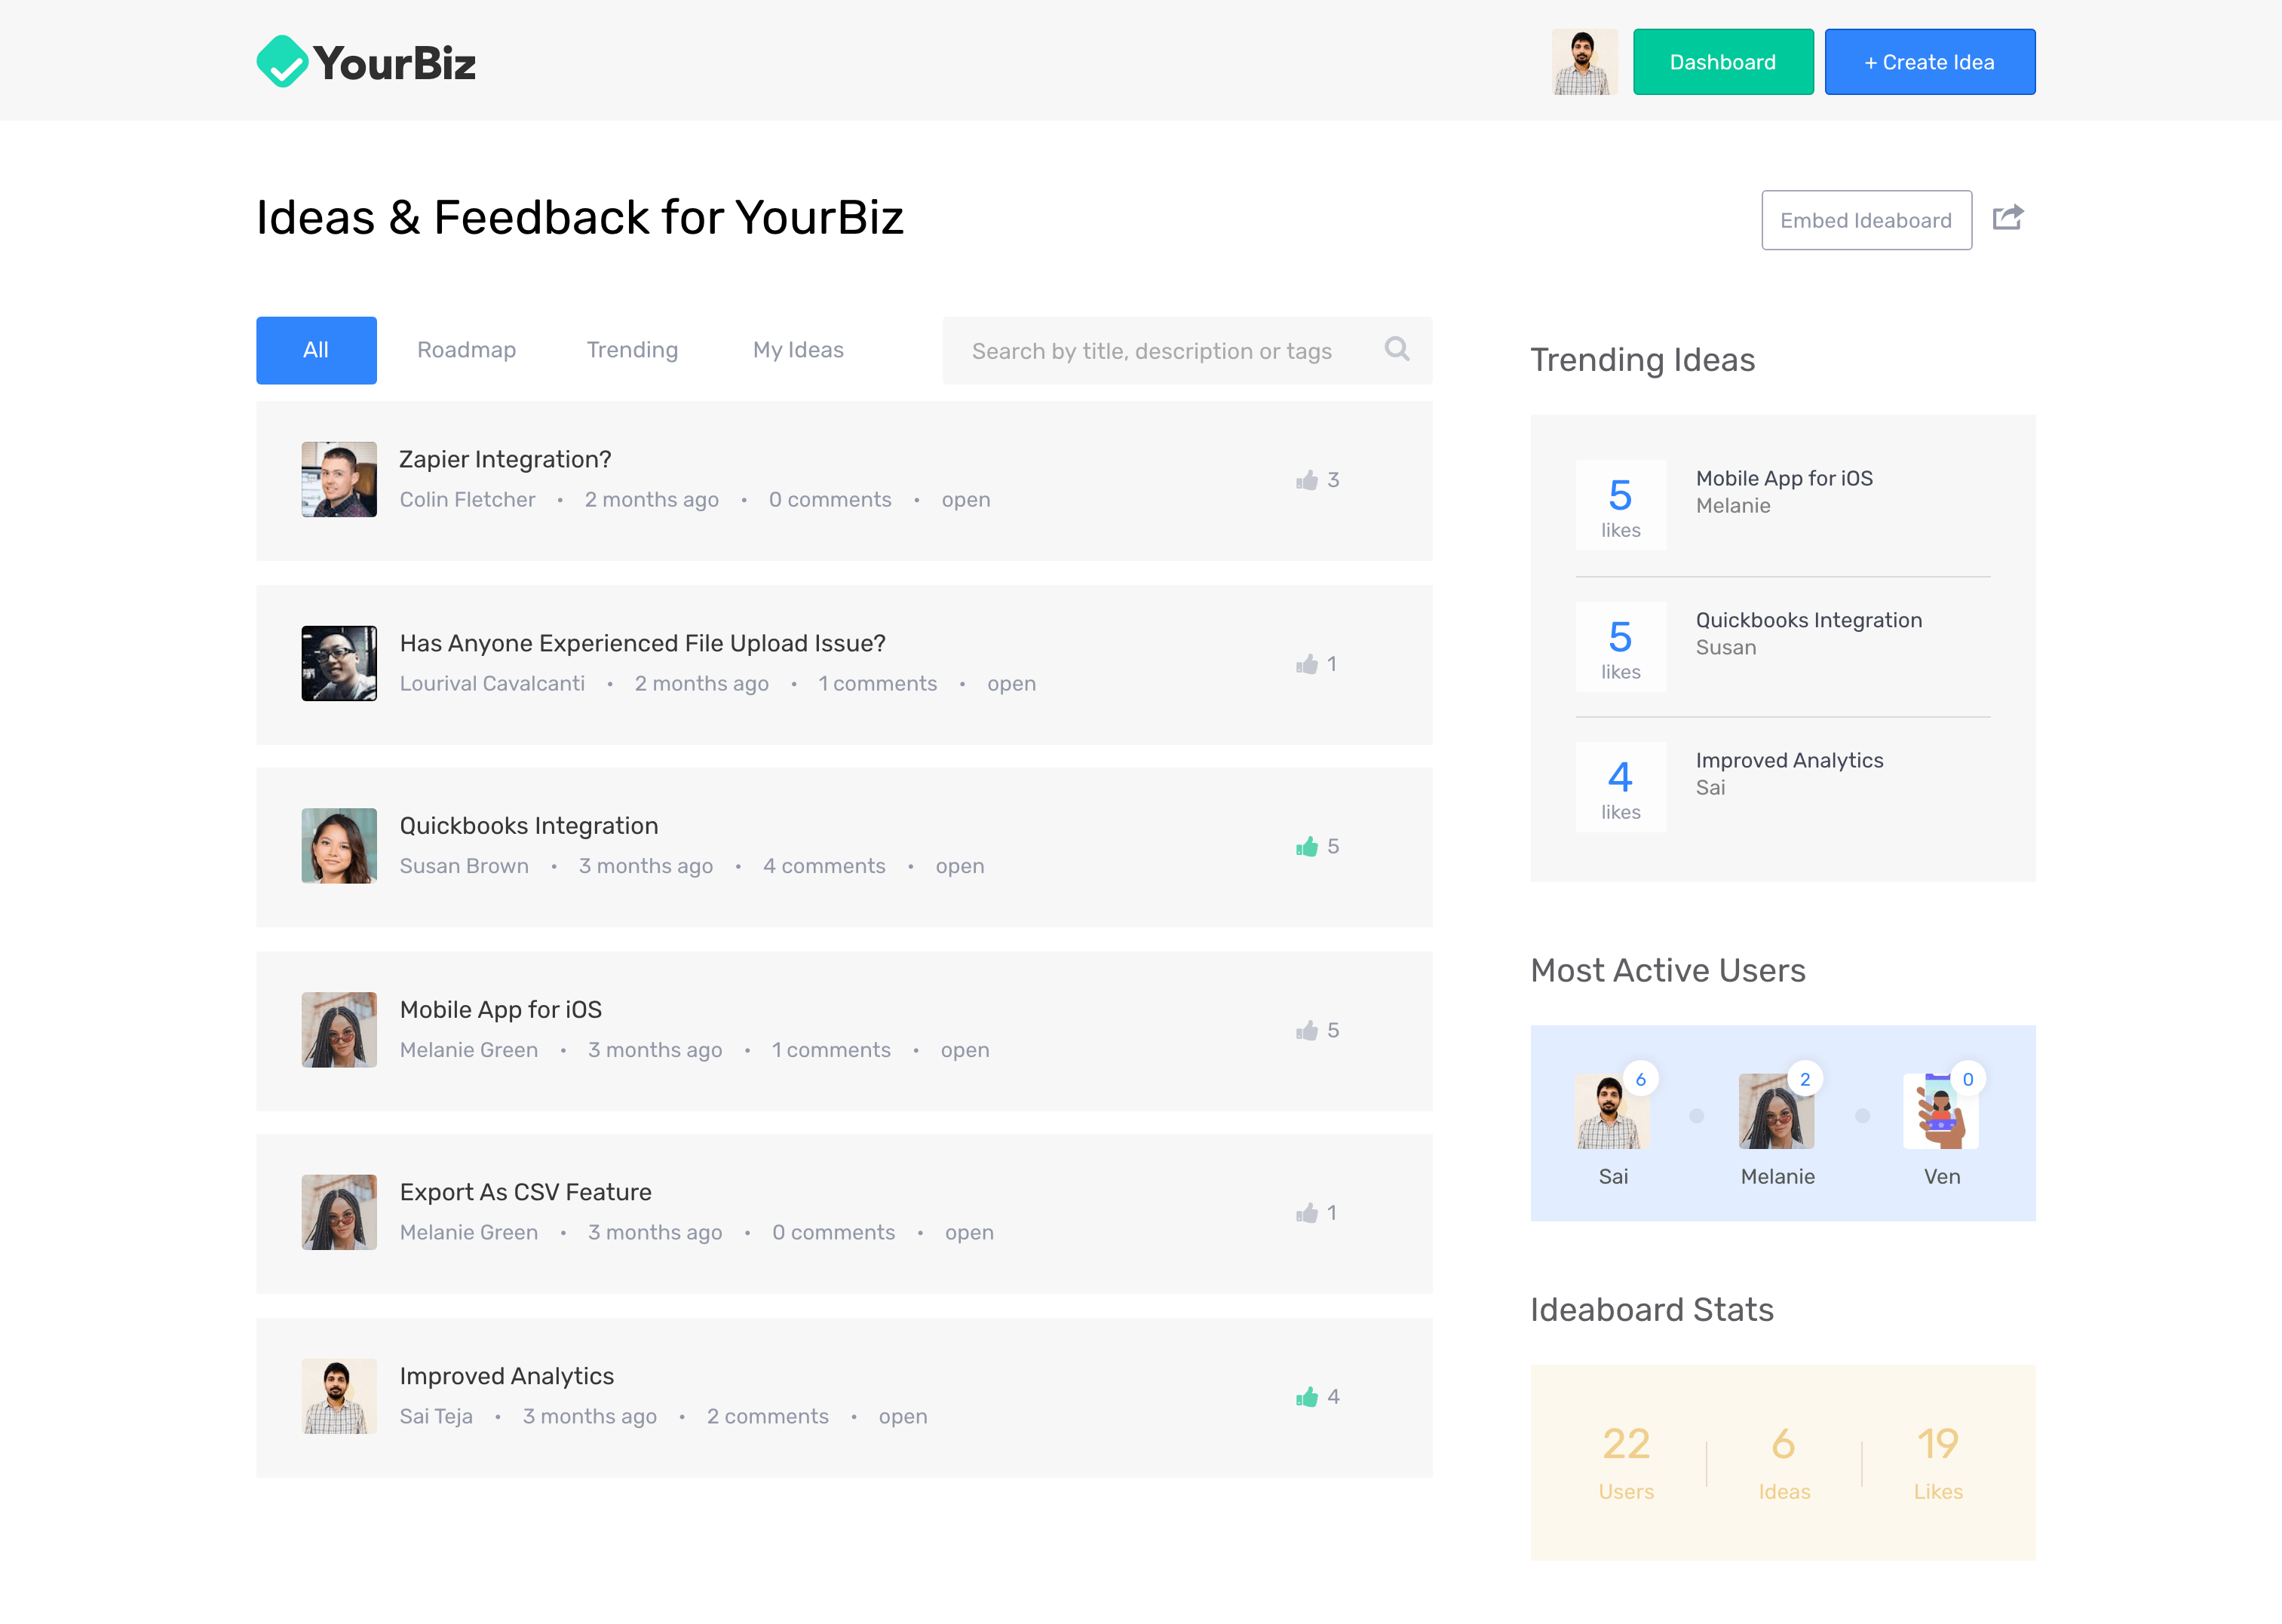 Ideaboard software dashboard for collecting feedback